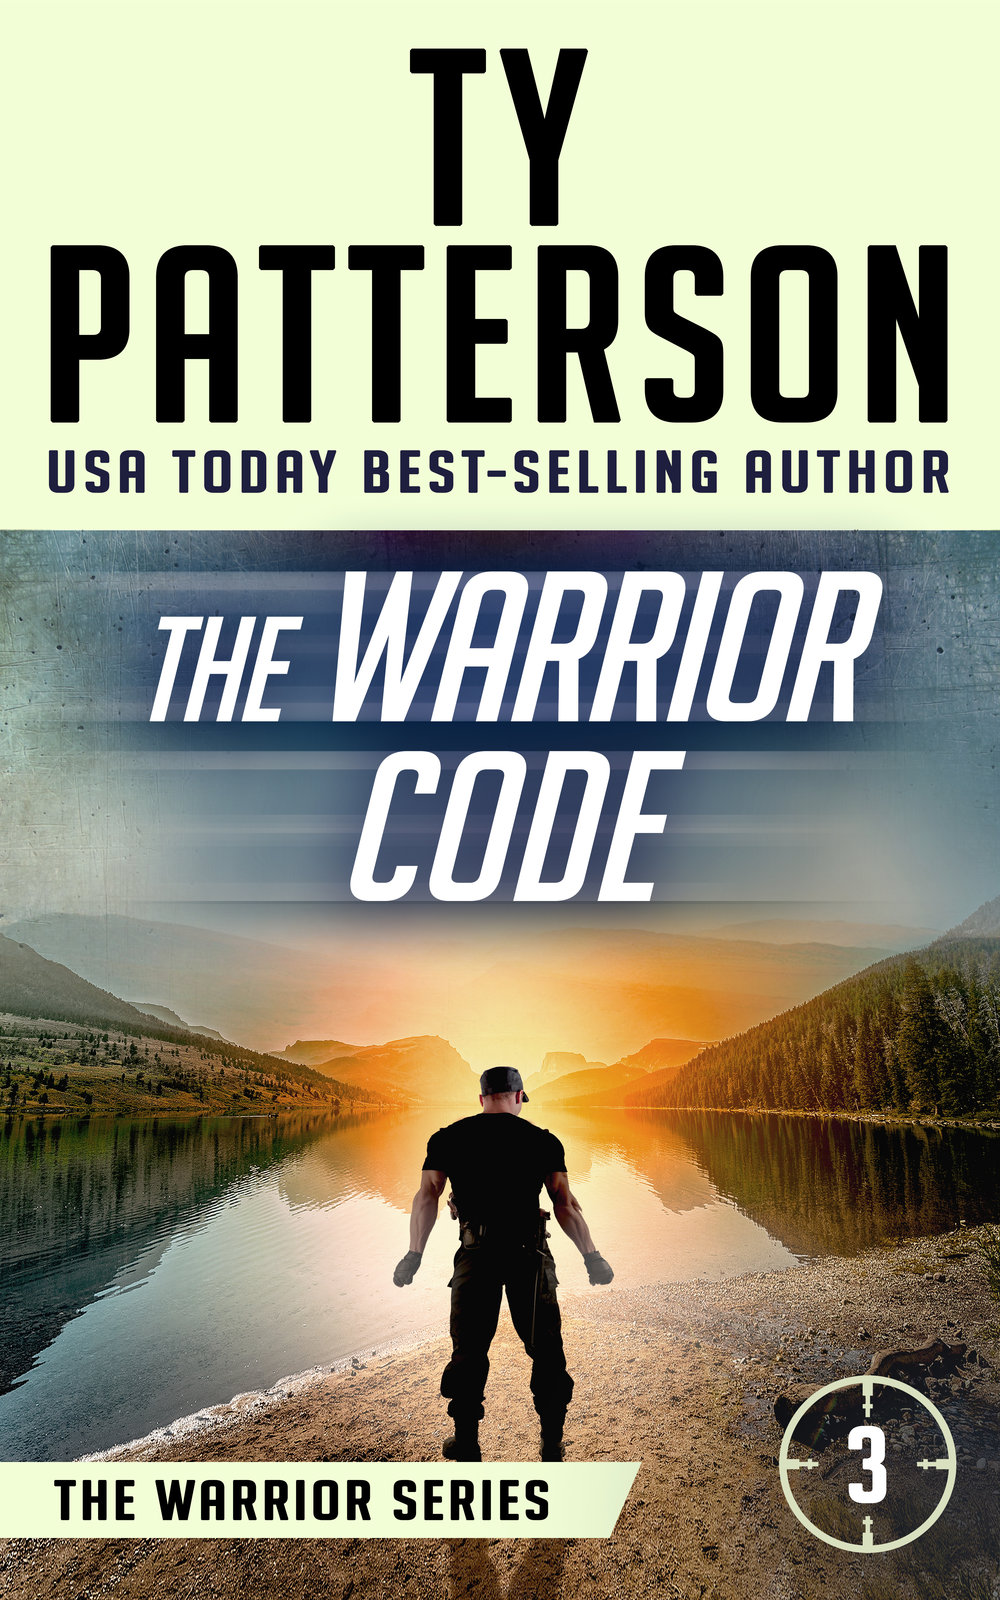 The+Warrior+Code+2018+2.jpg